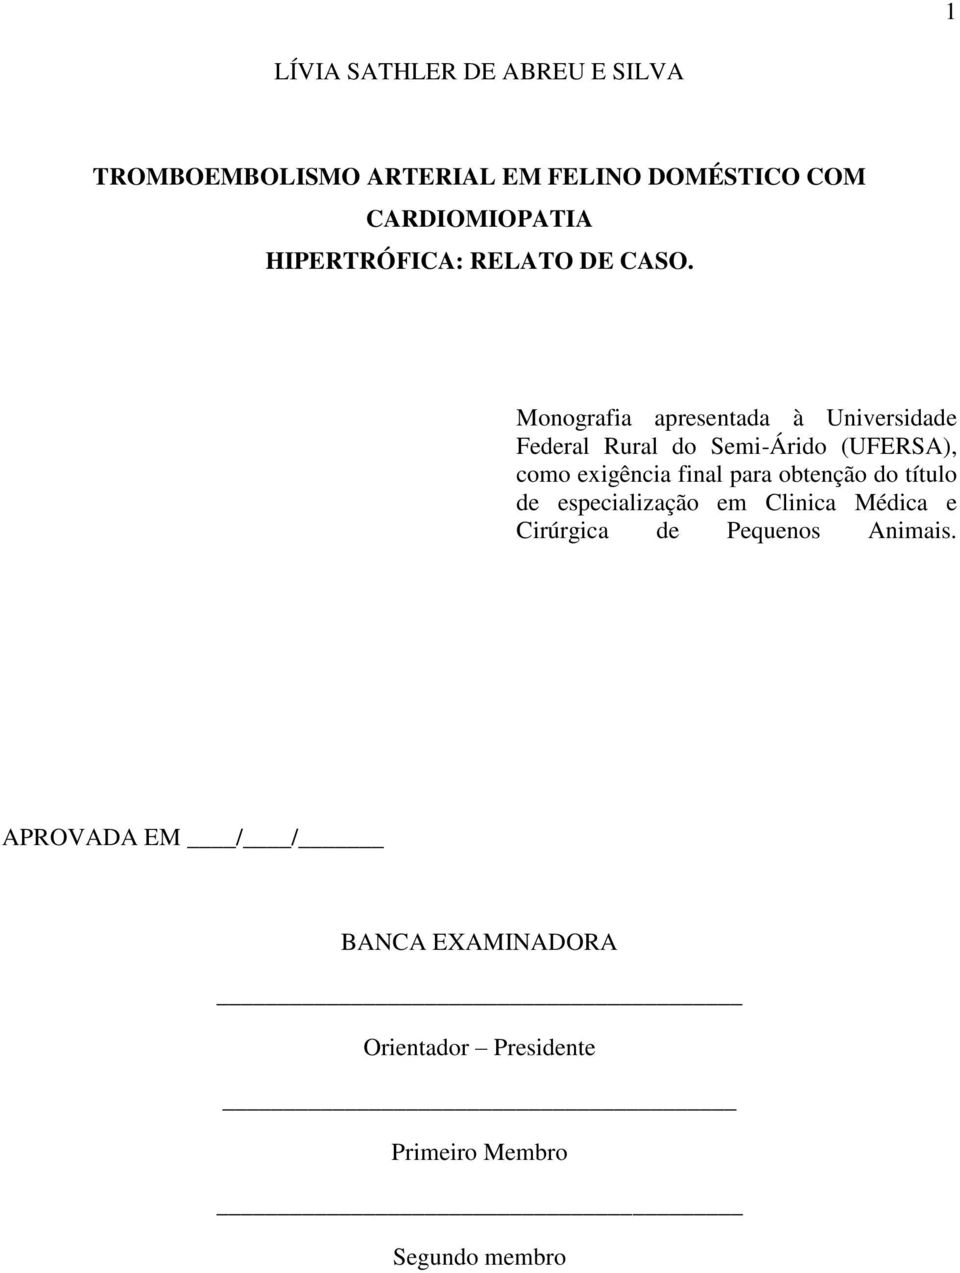 Monografia apresentada à Universidade Federal Rural do Semi-Árido (UFERSA), como exigência final